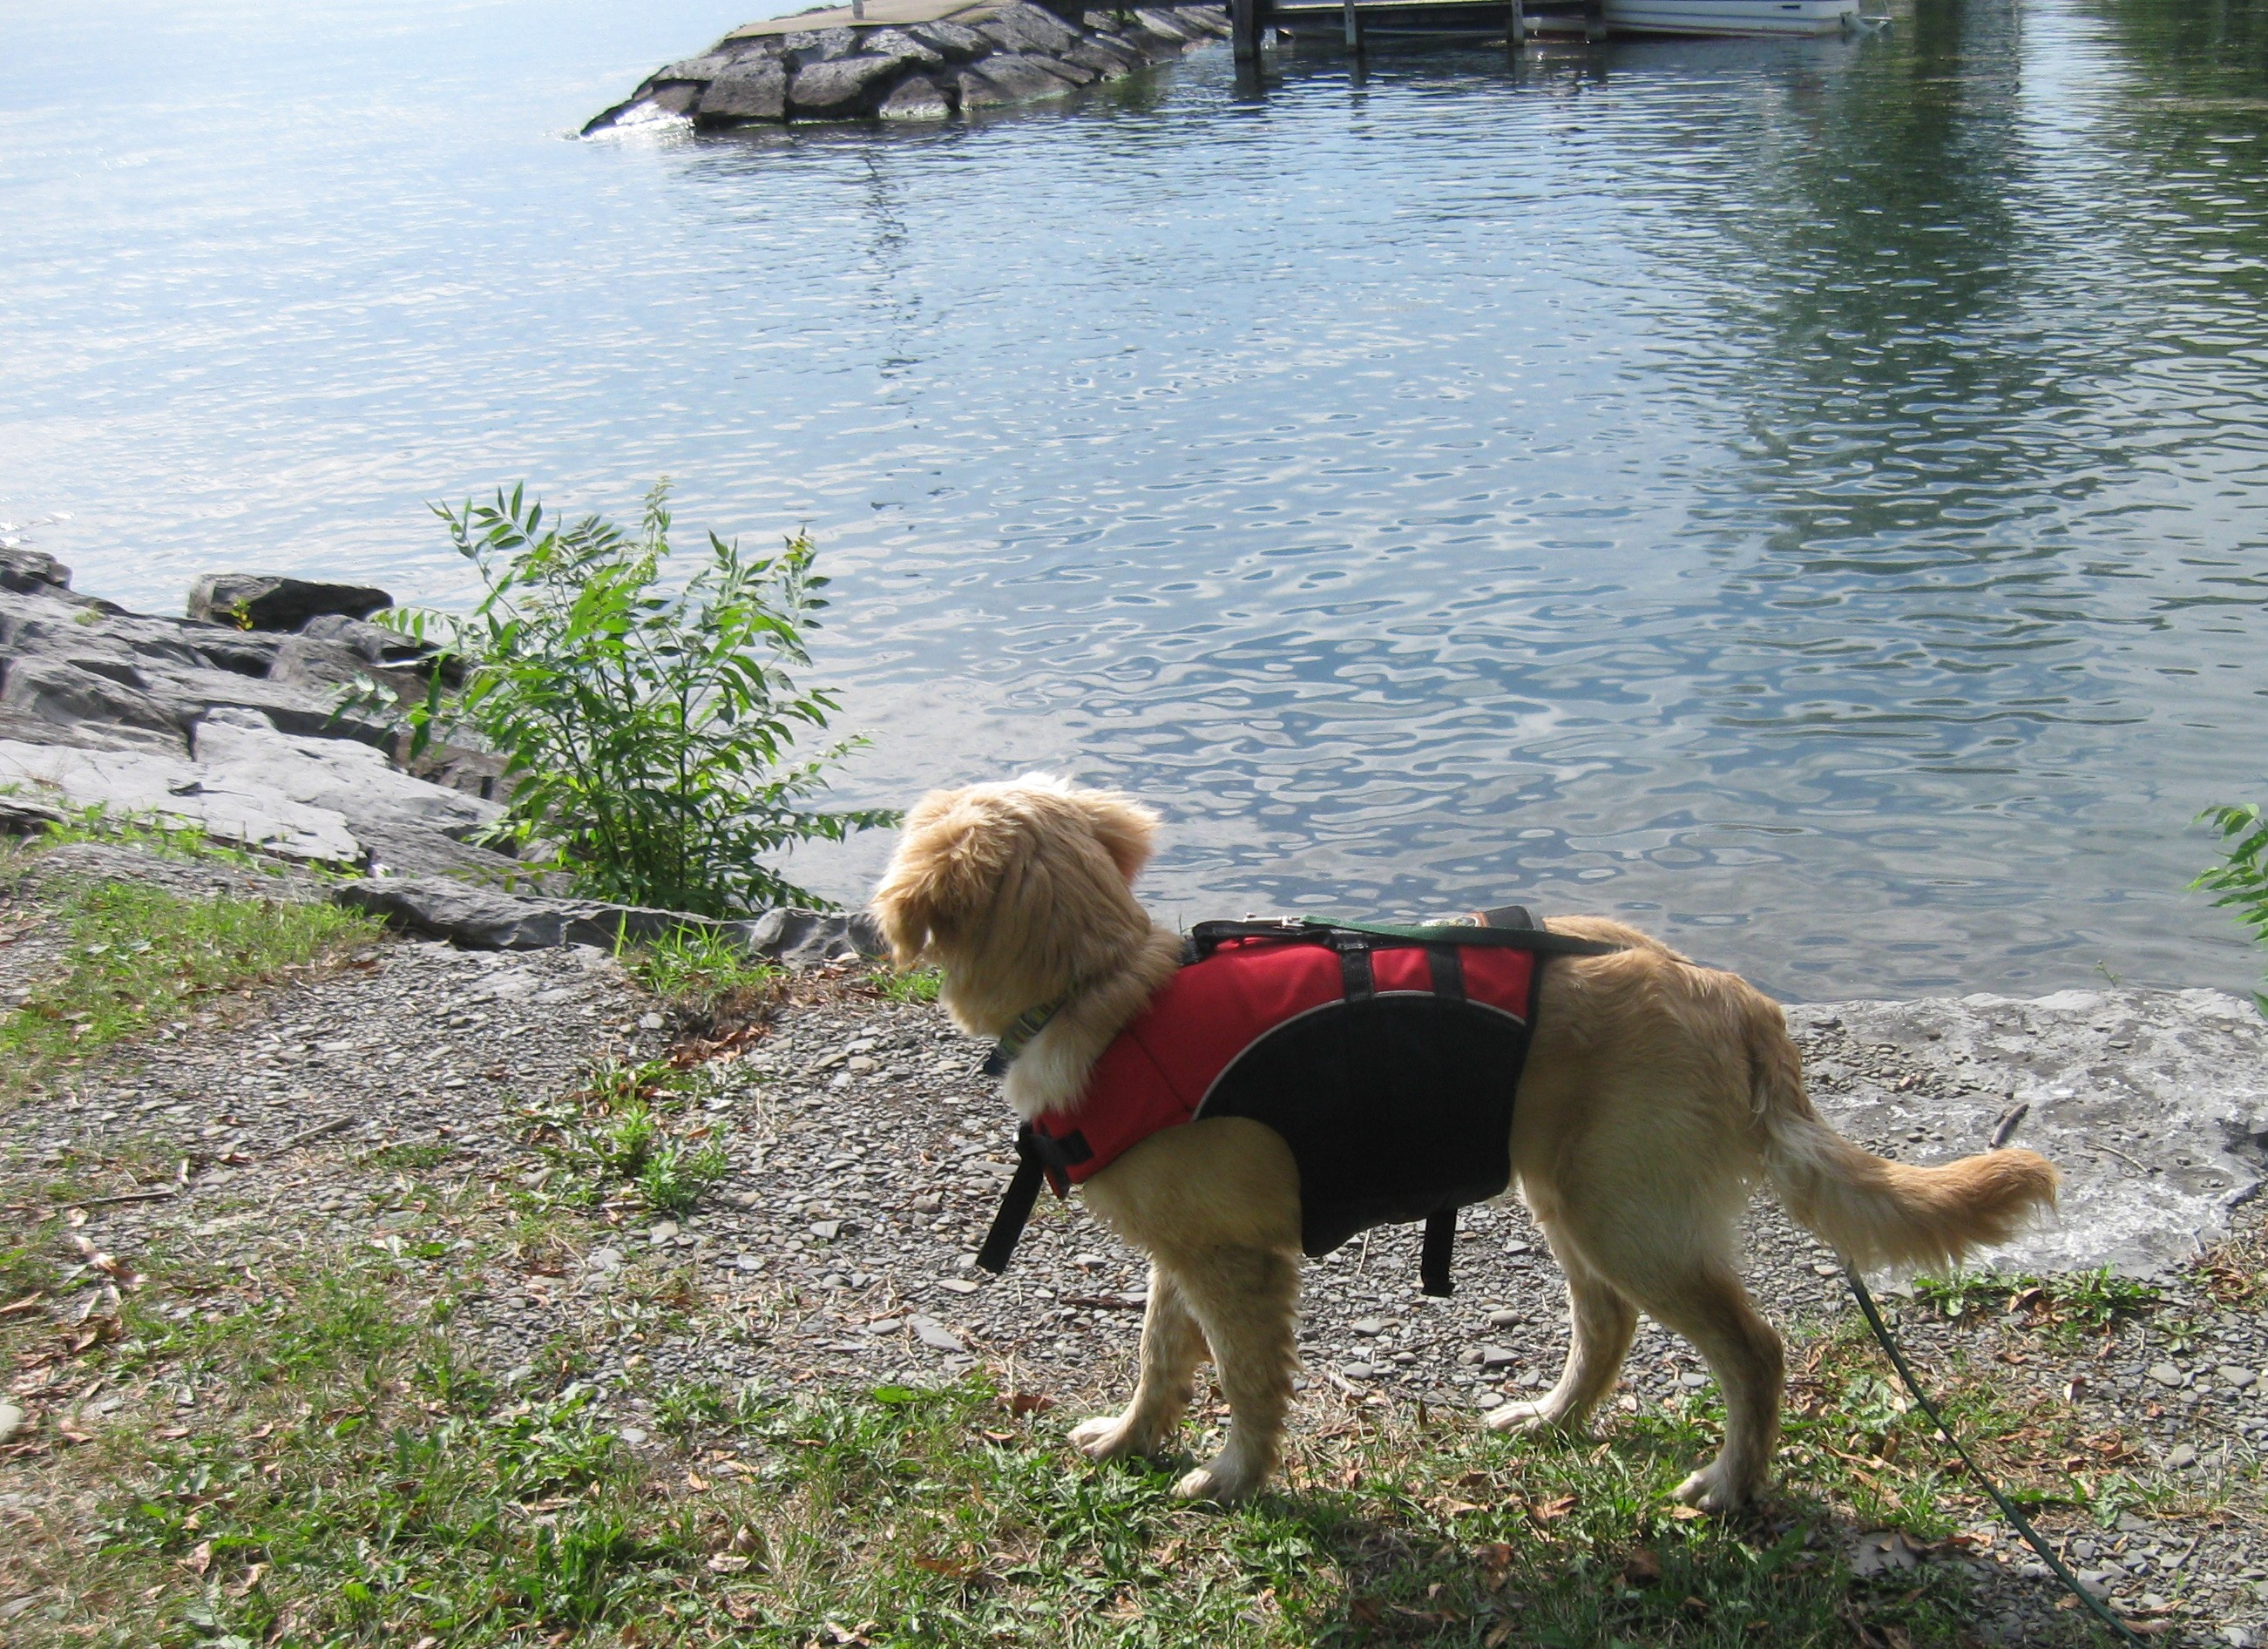 Golden Retriever Puppy in a Life Jacket looking at the Lake